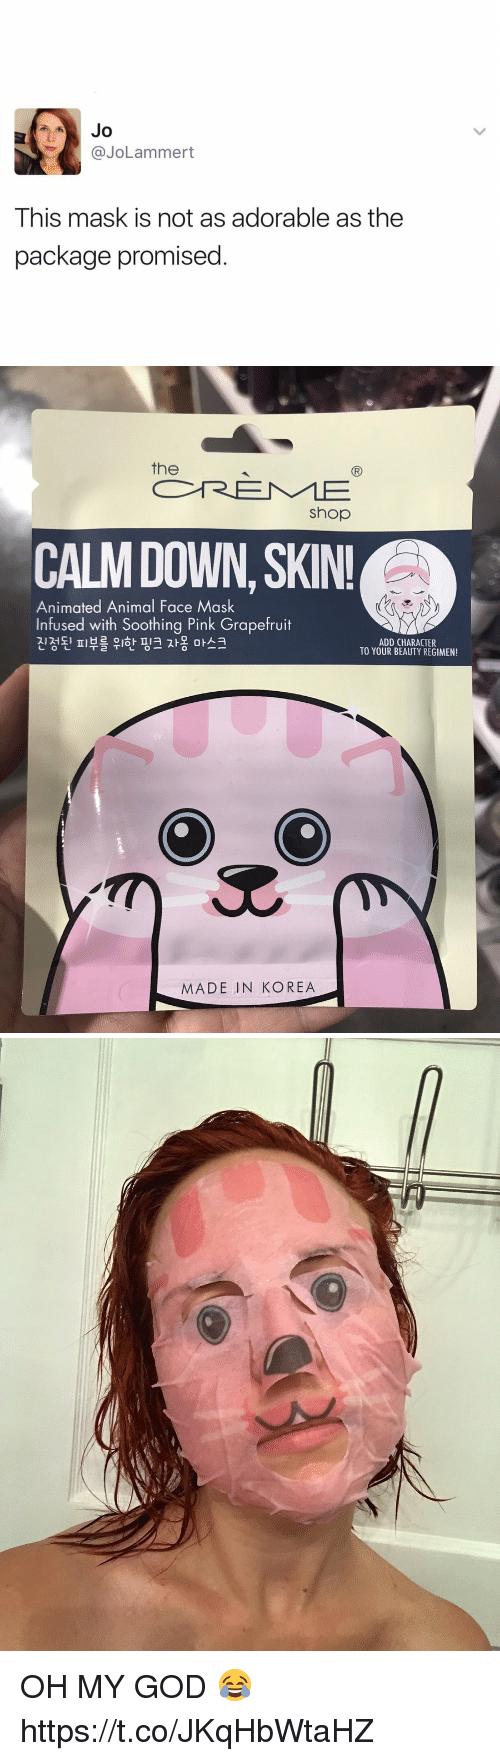 grapefruiting: Jo  Cayo Lammert  This mask is not as adorable as the  package promised   the  Shop  CALM DOWN, SKIN!  Animated Animal Face Mask  Infused with Soothing Pink Grapefruit  ADD CHARACTER  TT 2 T  L O L  TO YOUR BEAUTY REGIMEN!  MADE IN KOREA OH MY GOD 😂 https://t.co/JKqHbWtaHZ